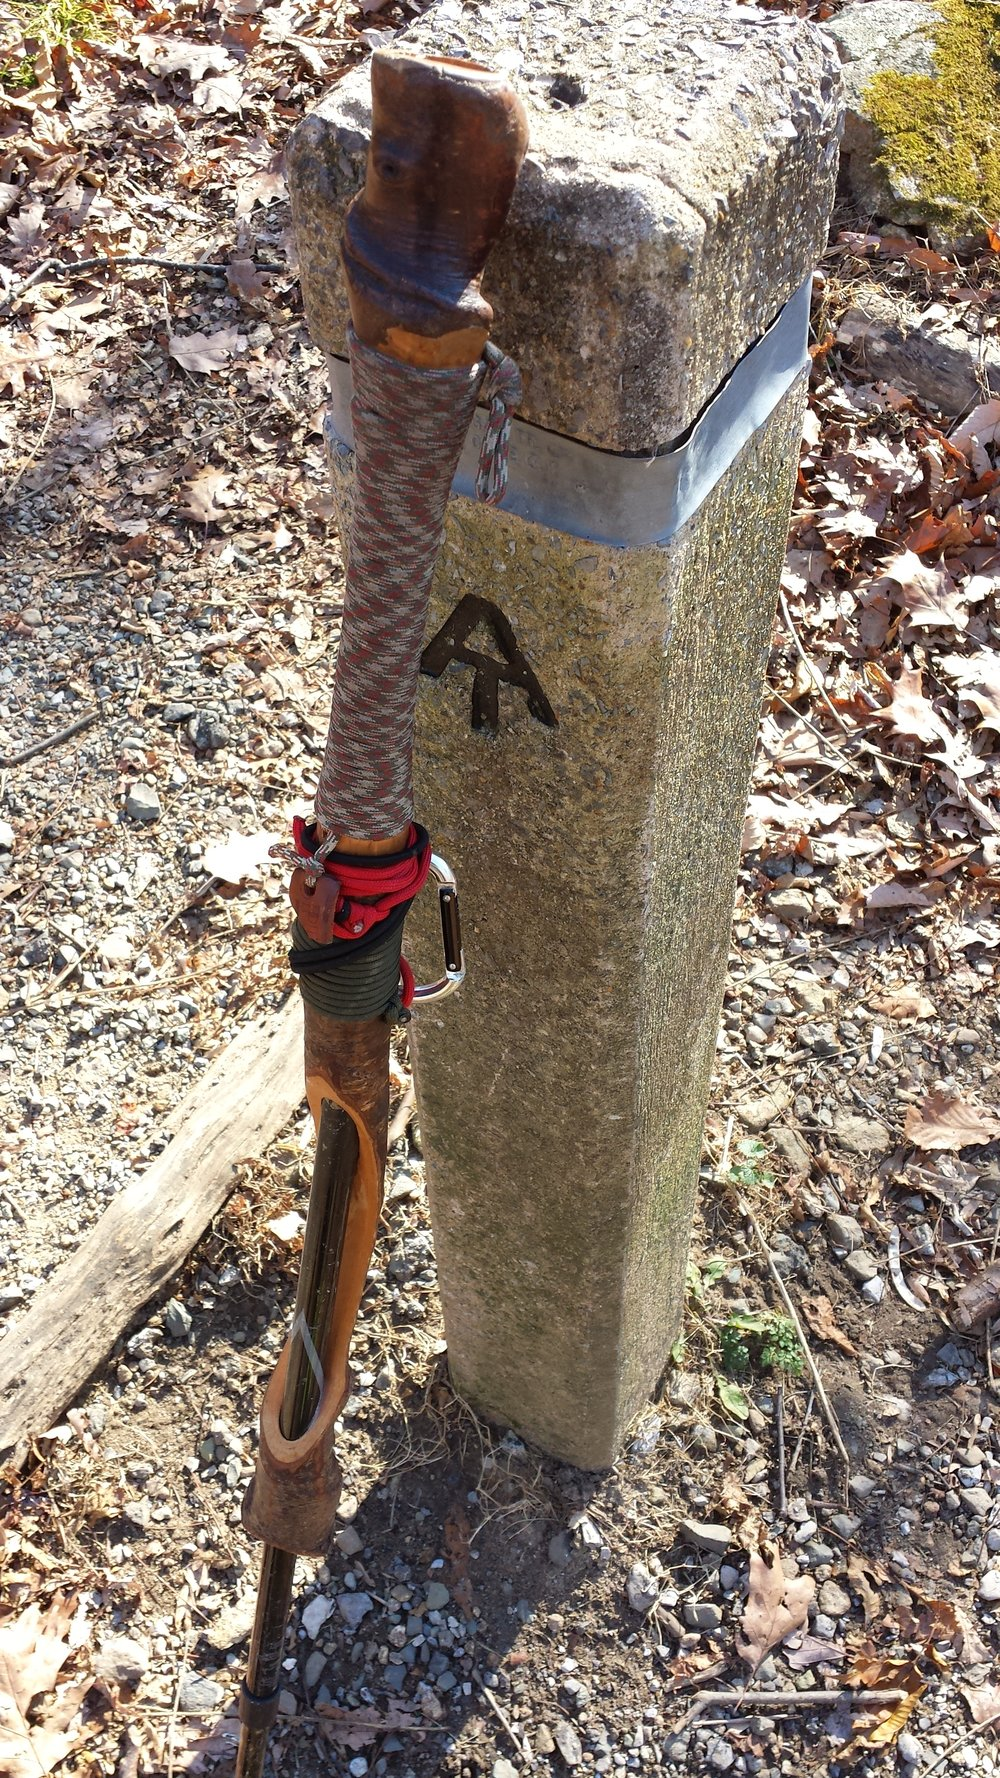 """Accustomed to the constant presence of rugged A.T. sign post and his trusty hiking stick 2.0 Chad """"Octo"""" Haynes enjoyed the views afforded by the pristine Shenandoah Valley in Virginia."""